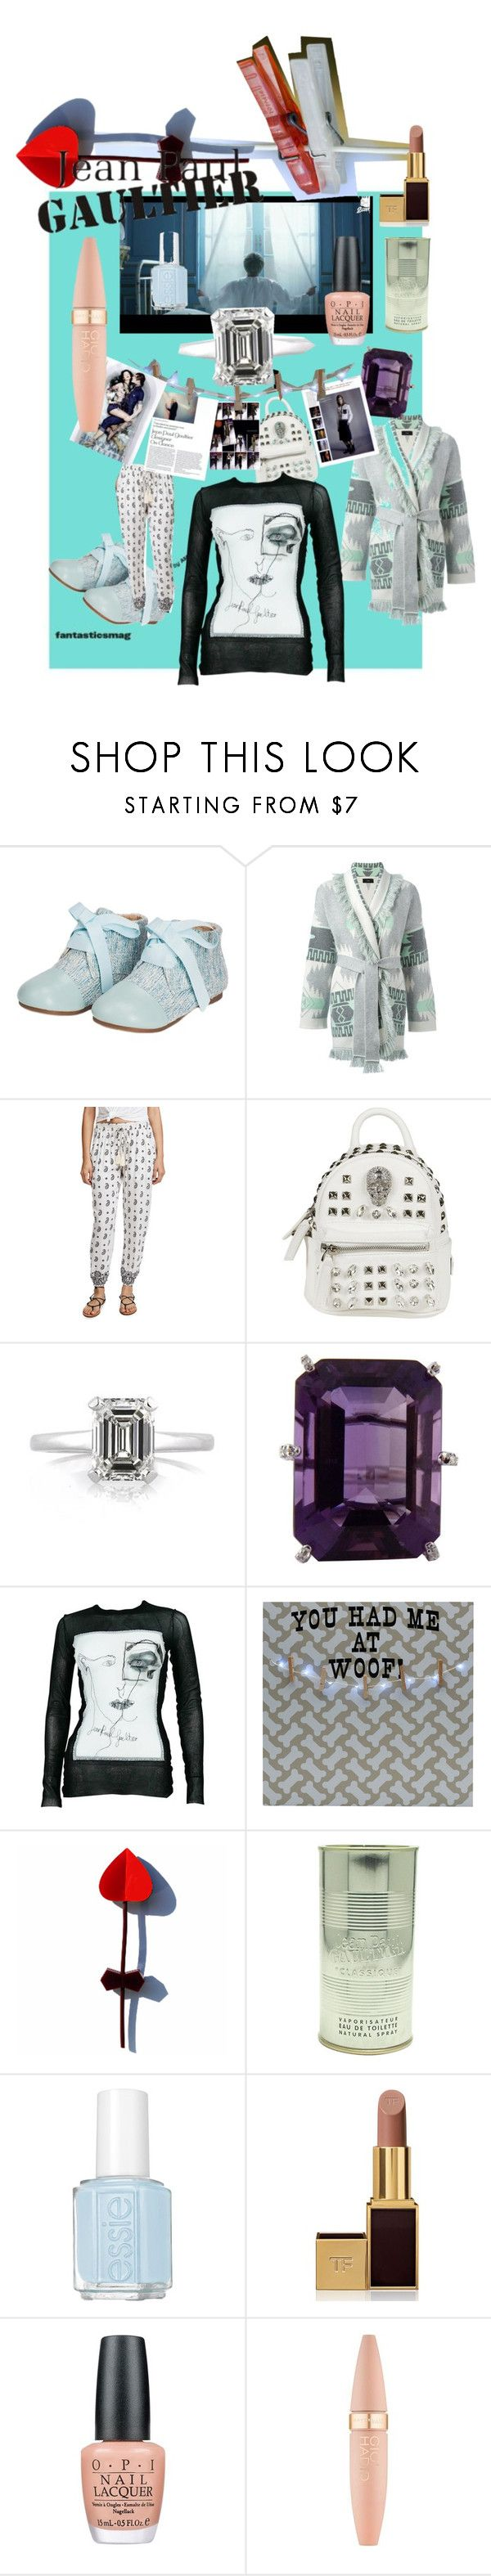 """""""JeanPaul G"""" by erggoe ❤ liked on Polyvore featuring Alanui, Cool Change, Philipp Plein, Mark Broumand, Jean-Paul Gaultier, Melannco, Essie, Tom Ford, OPI and Maybelline"""